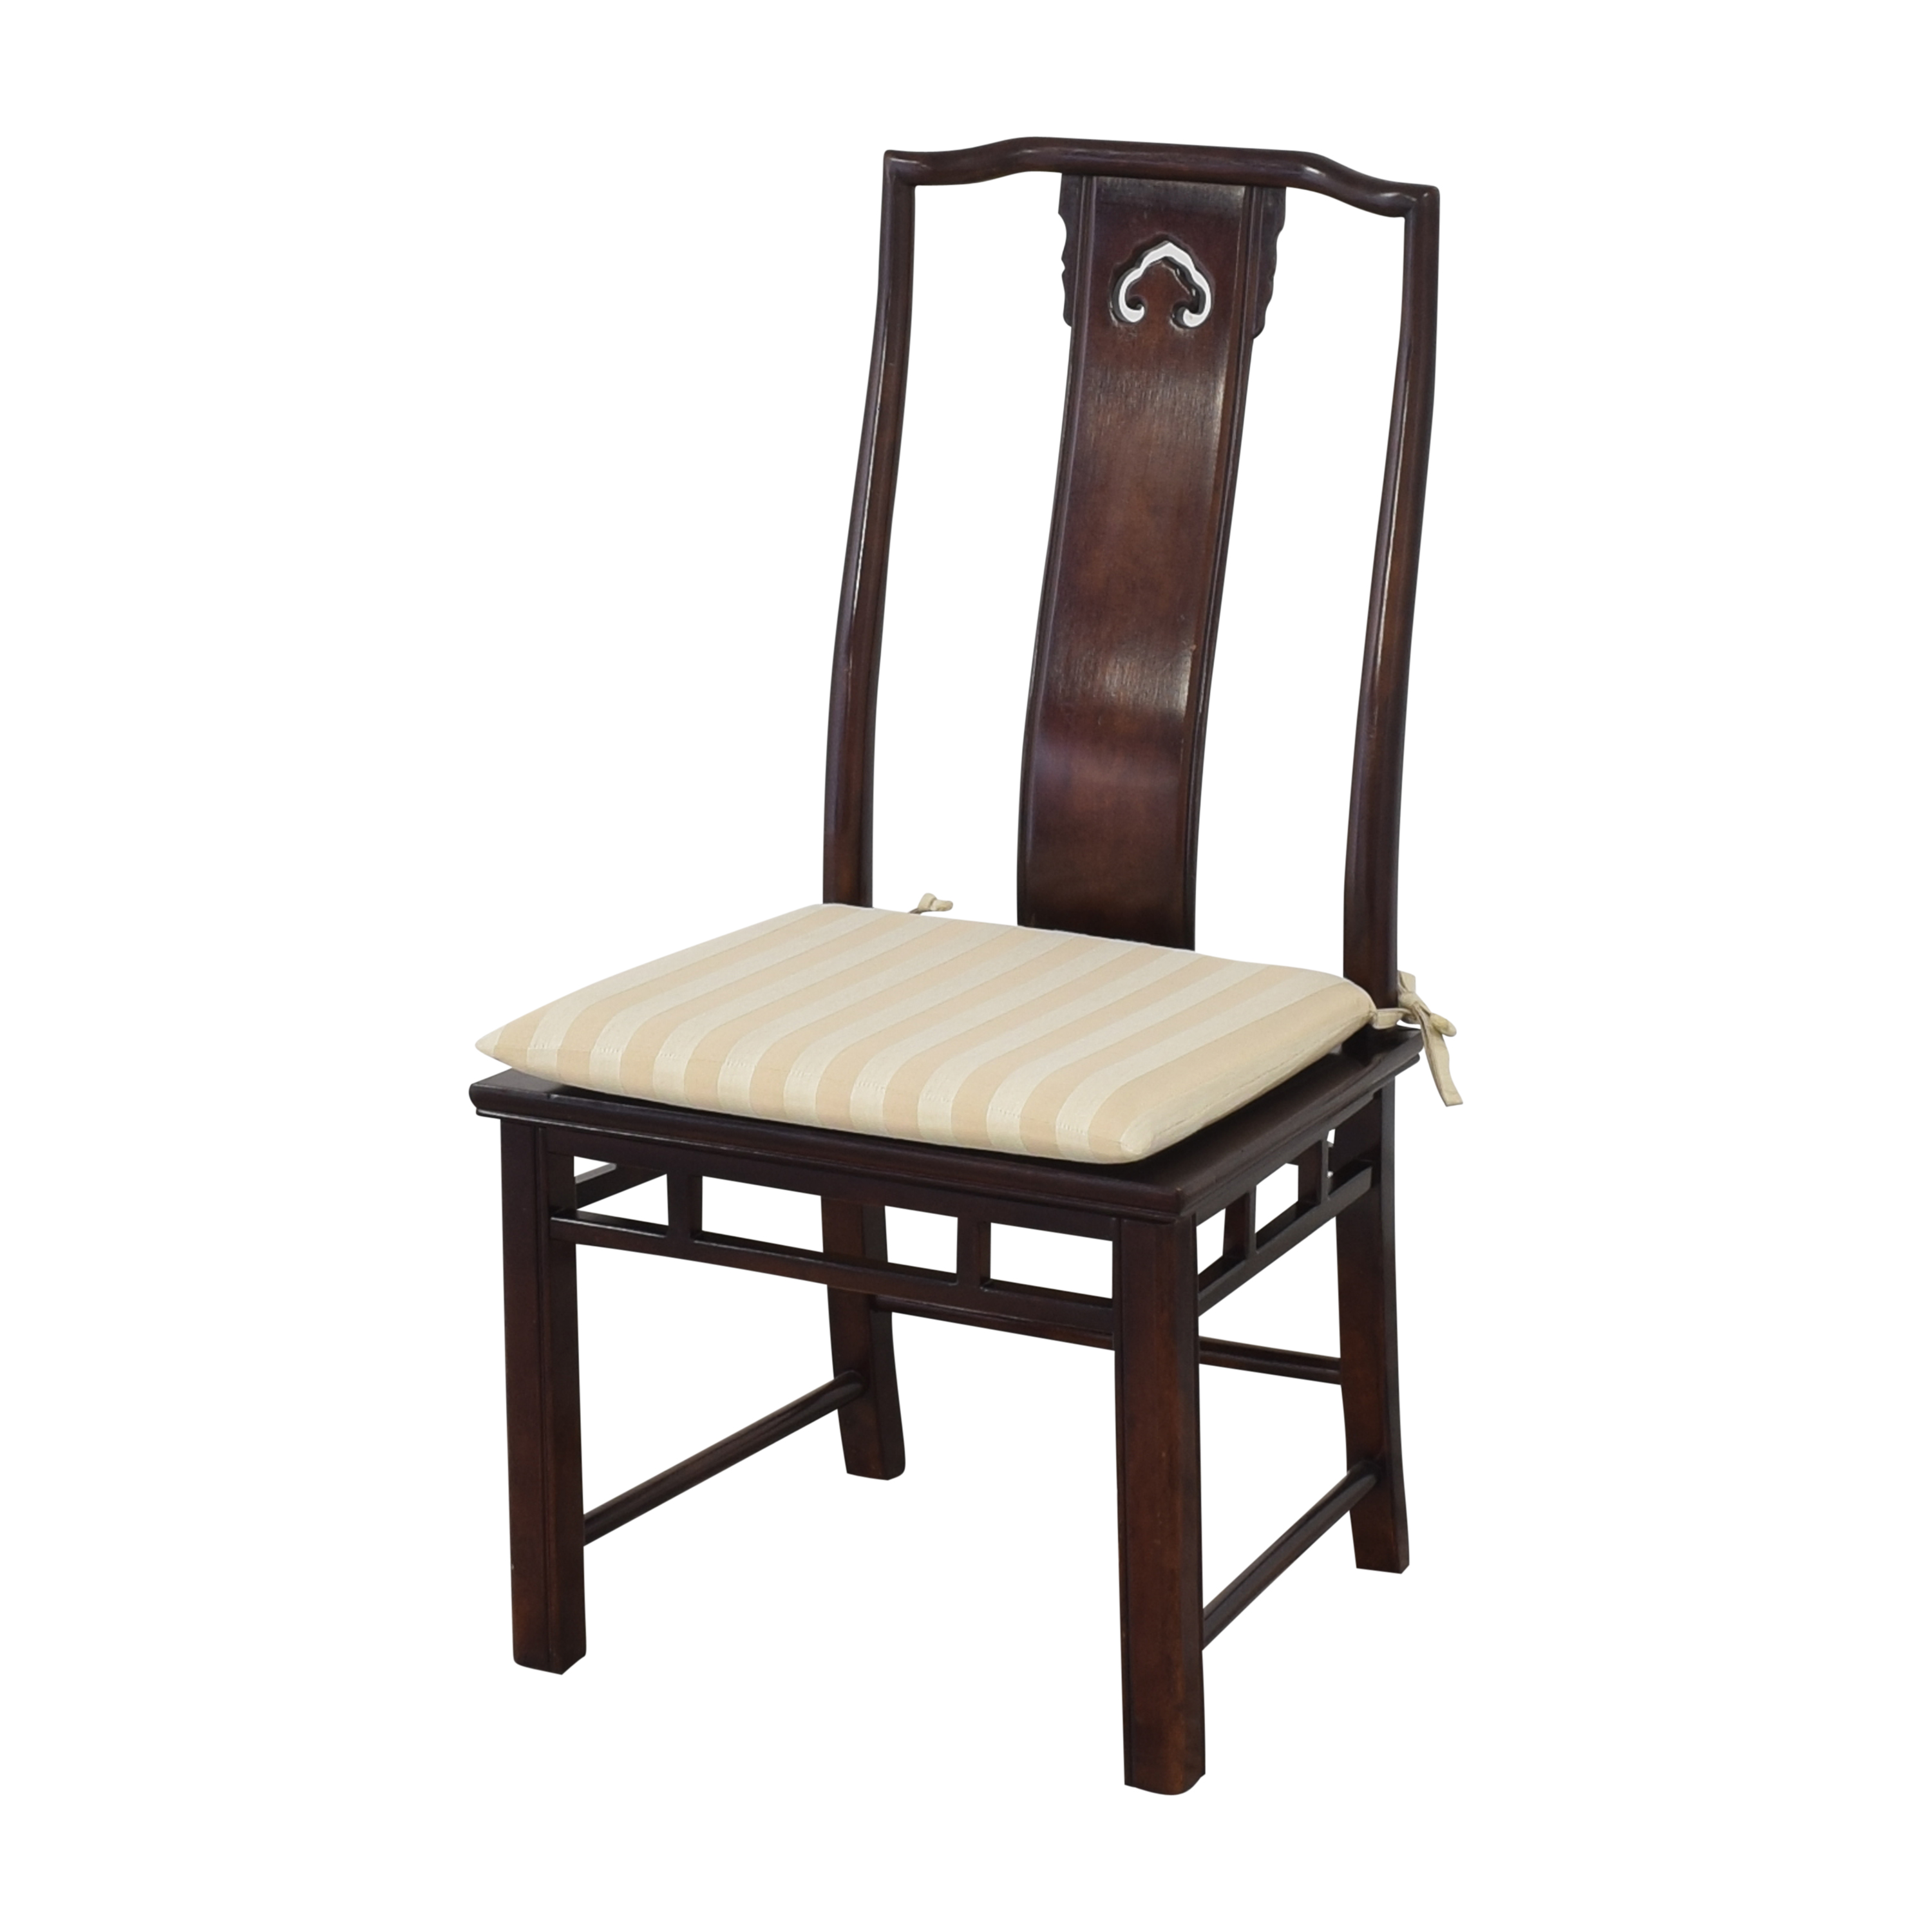 White Fine Furniture White Fine Furniture Chinoiserie Dining Chairs on sale